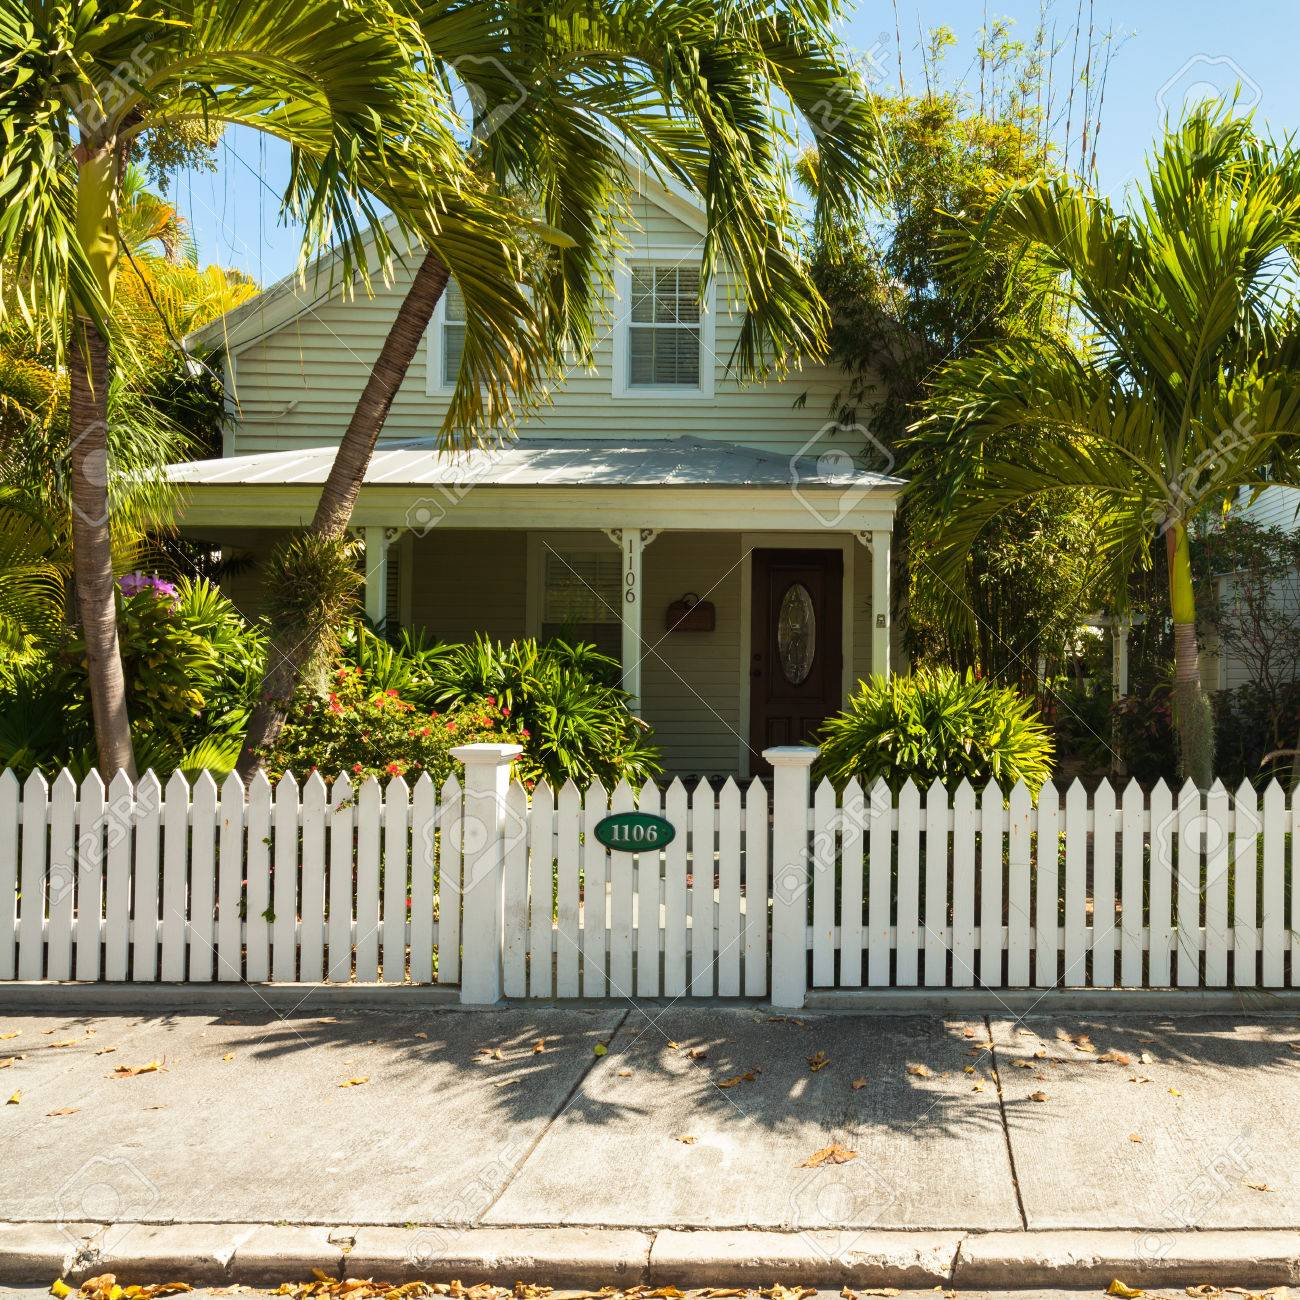 Key West, Florida USA   March 5, 2015: Typical Wood Frame Architecture Style